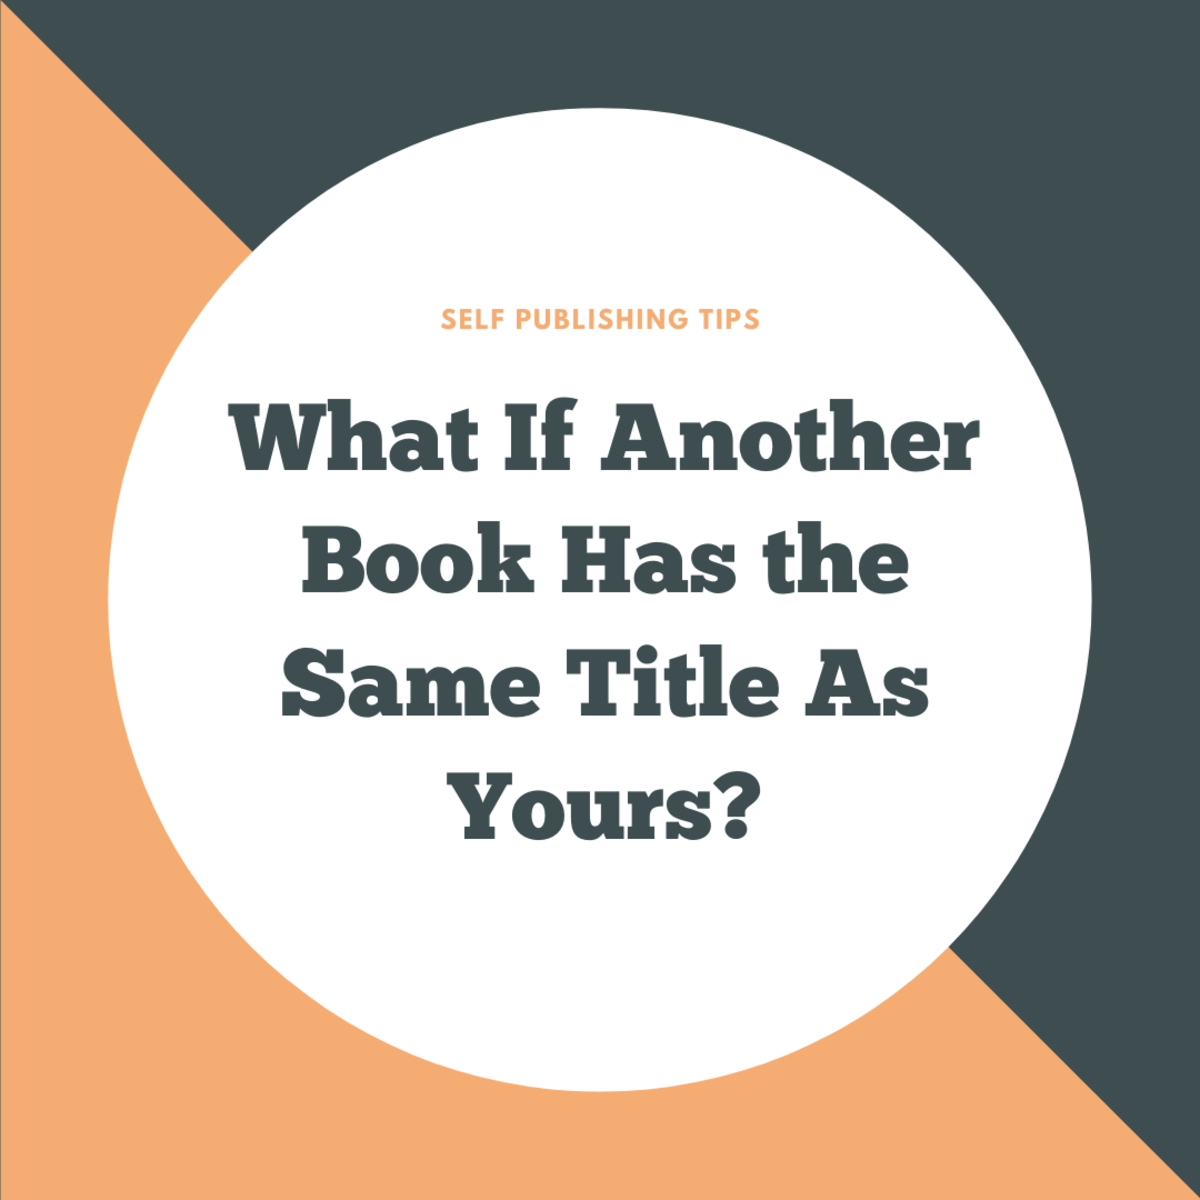 What If Another Book Has the Same Title as Yours?